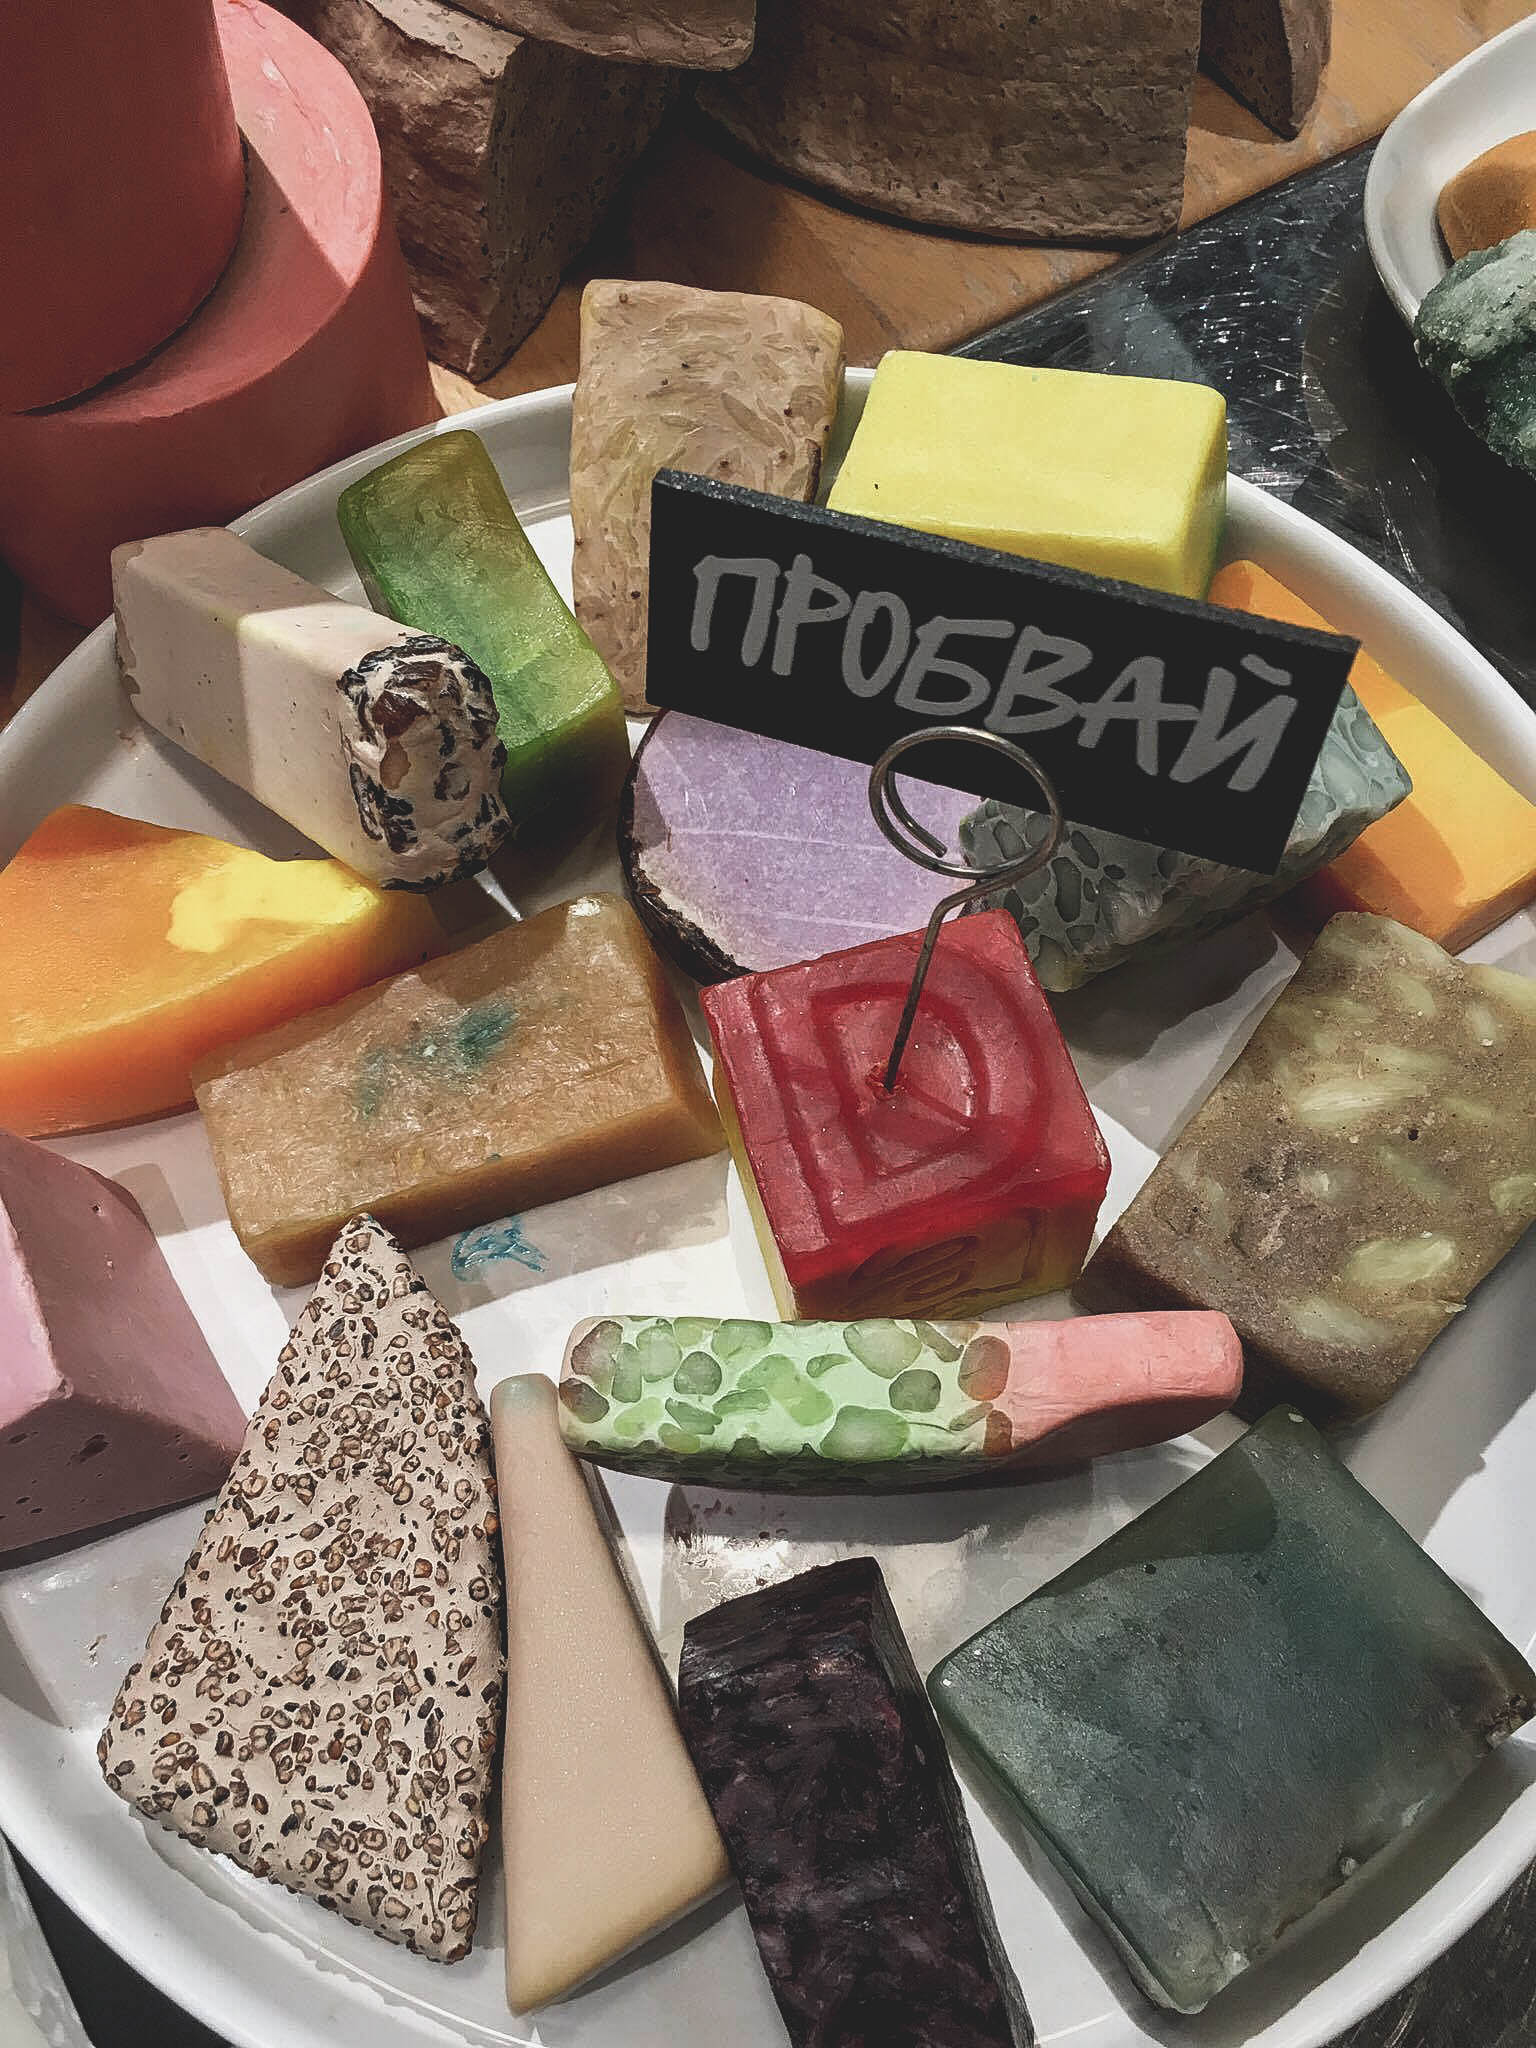 lush cosmetics bulgaria review visit by Bulgarian beauty blogger Quite a Looker Lina www.quitealooker.com